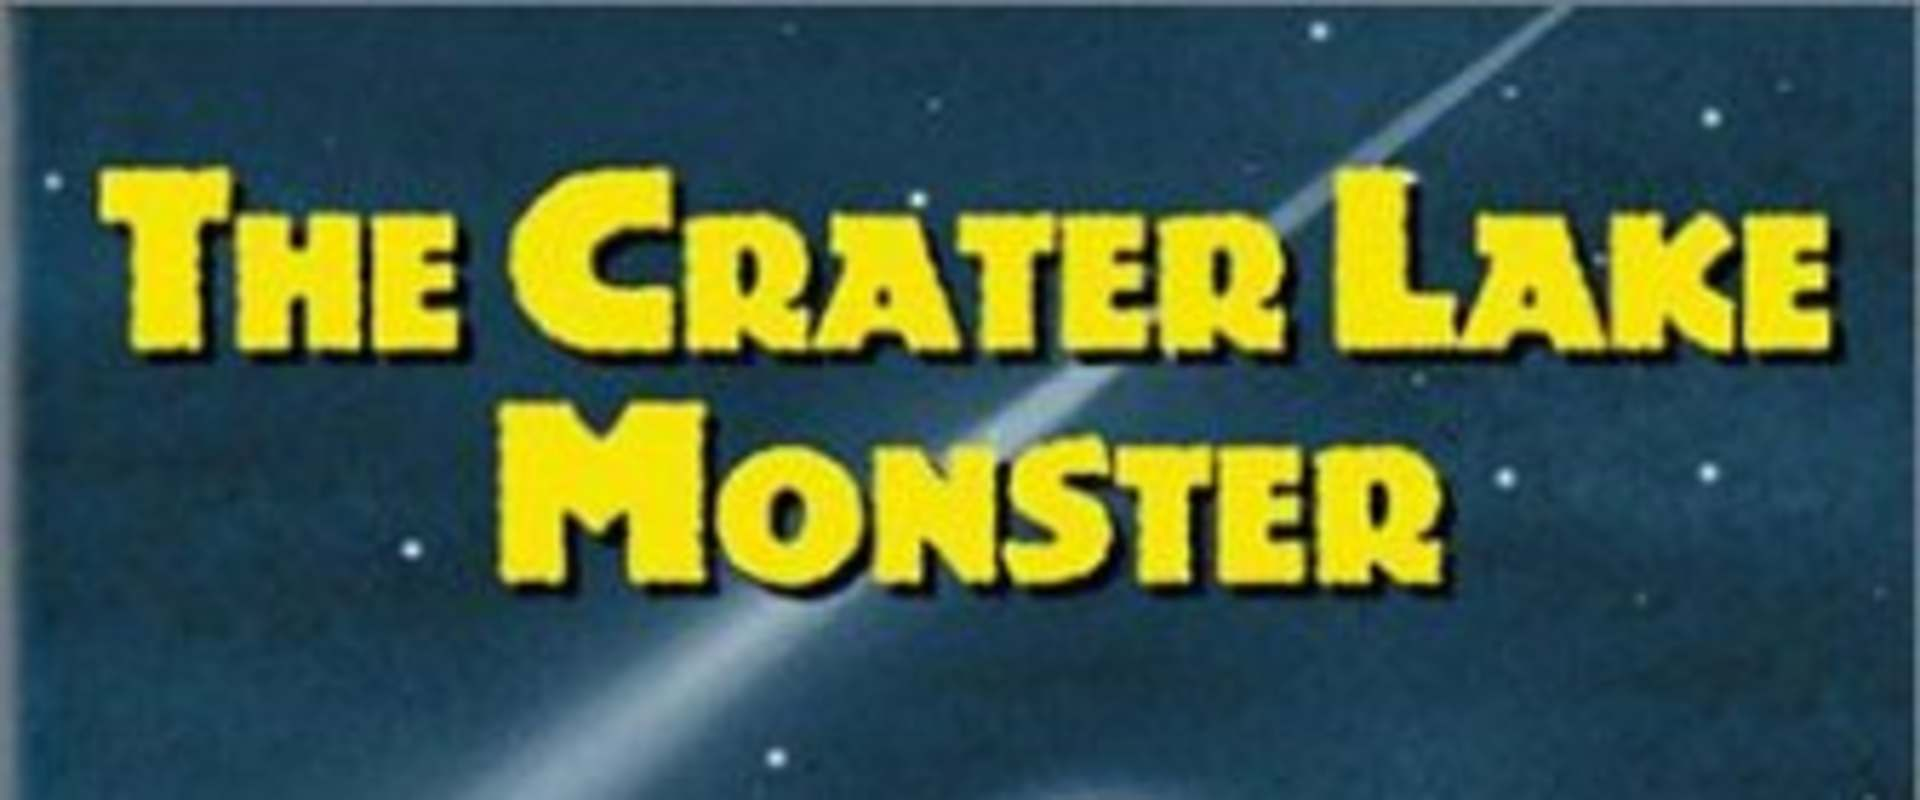 The Crater Lake Monster background 2